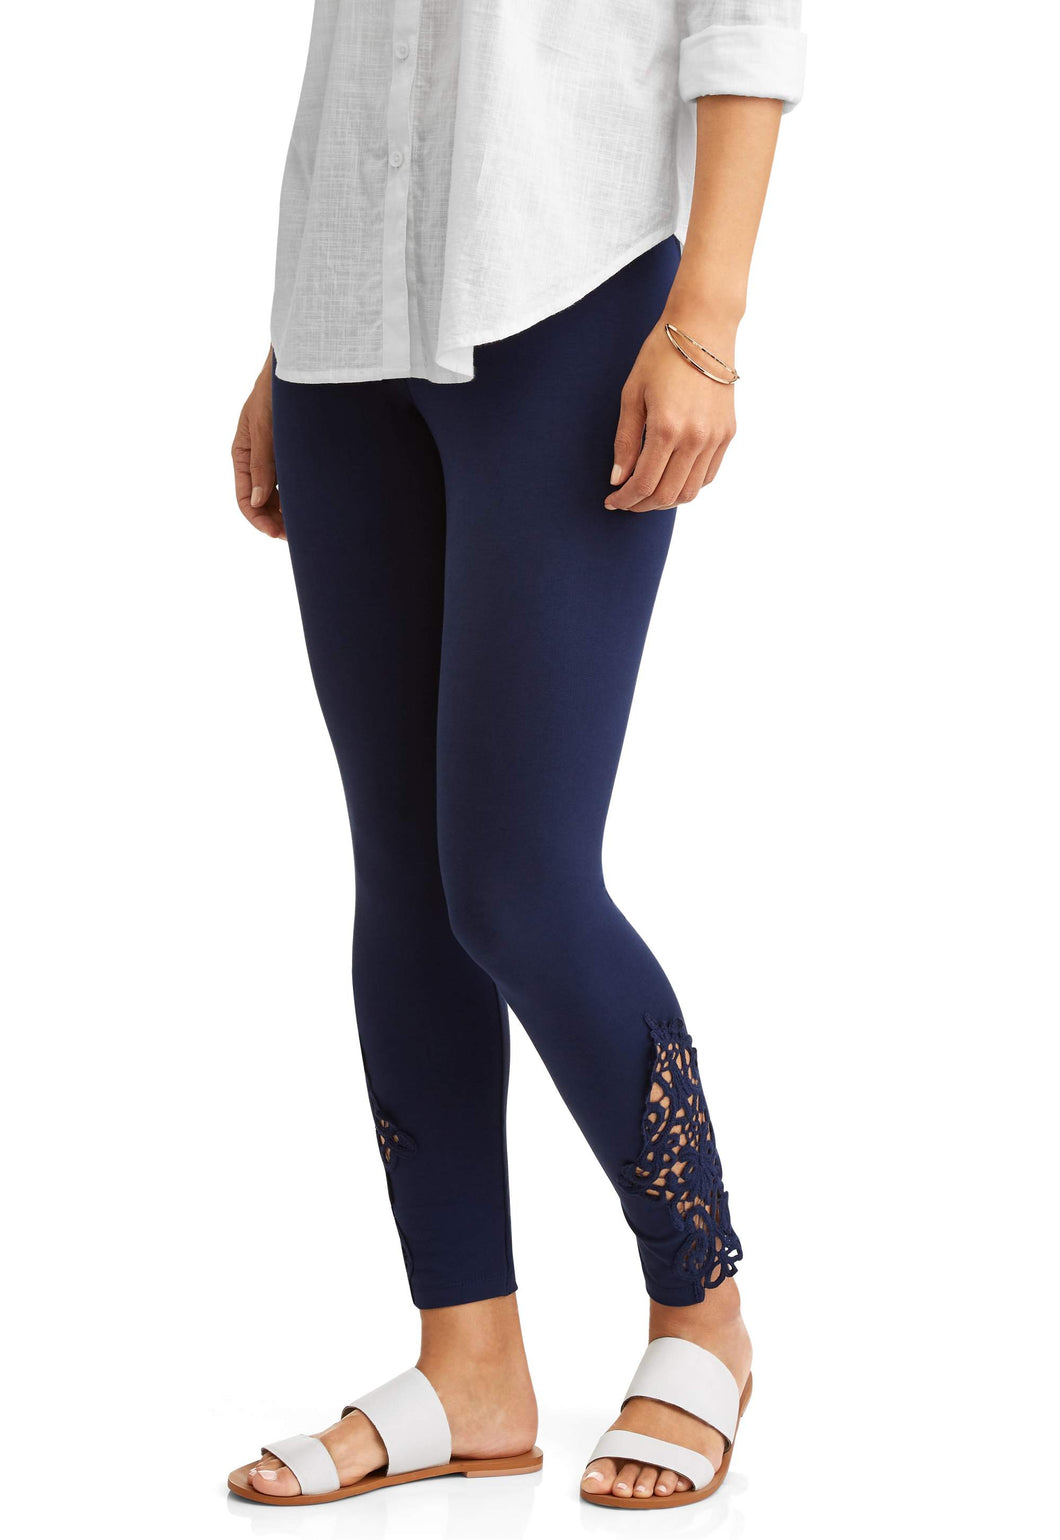 Women's Legging With Lace Inset Ankle